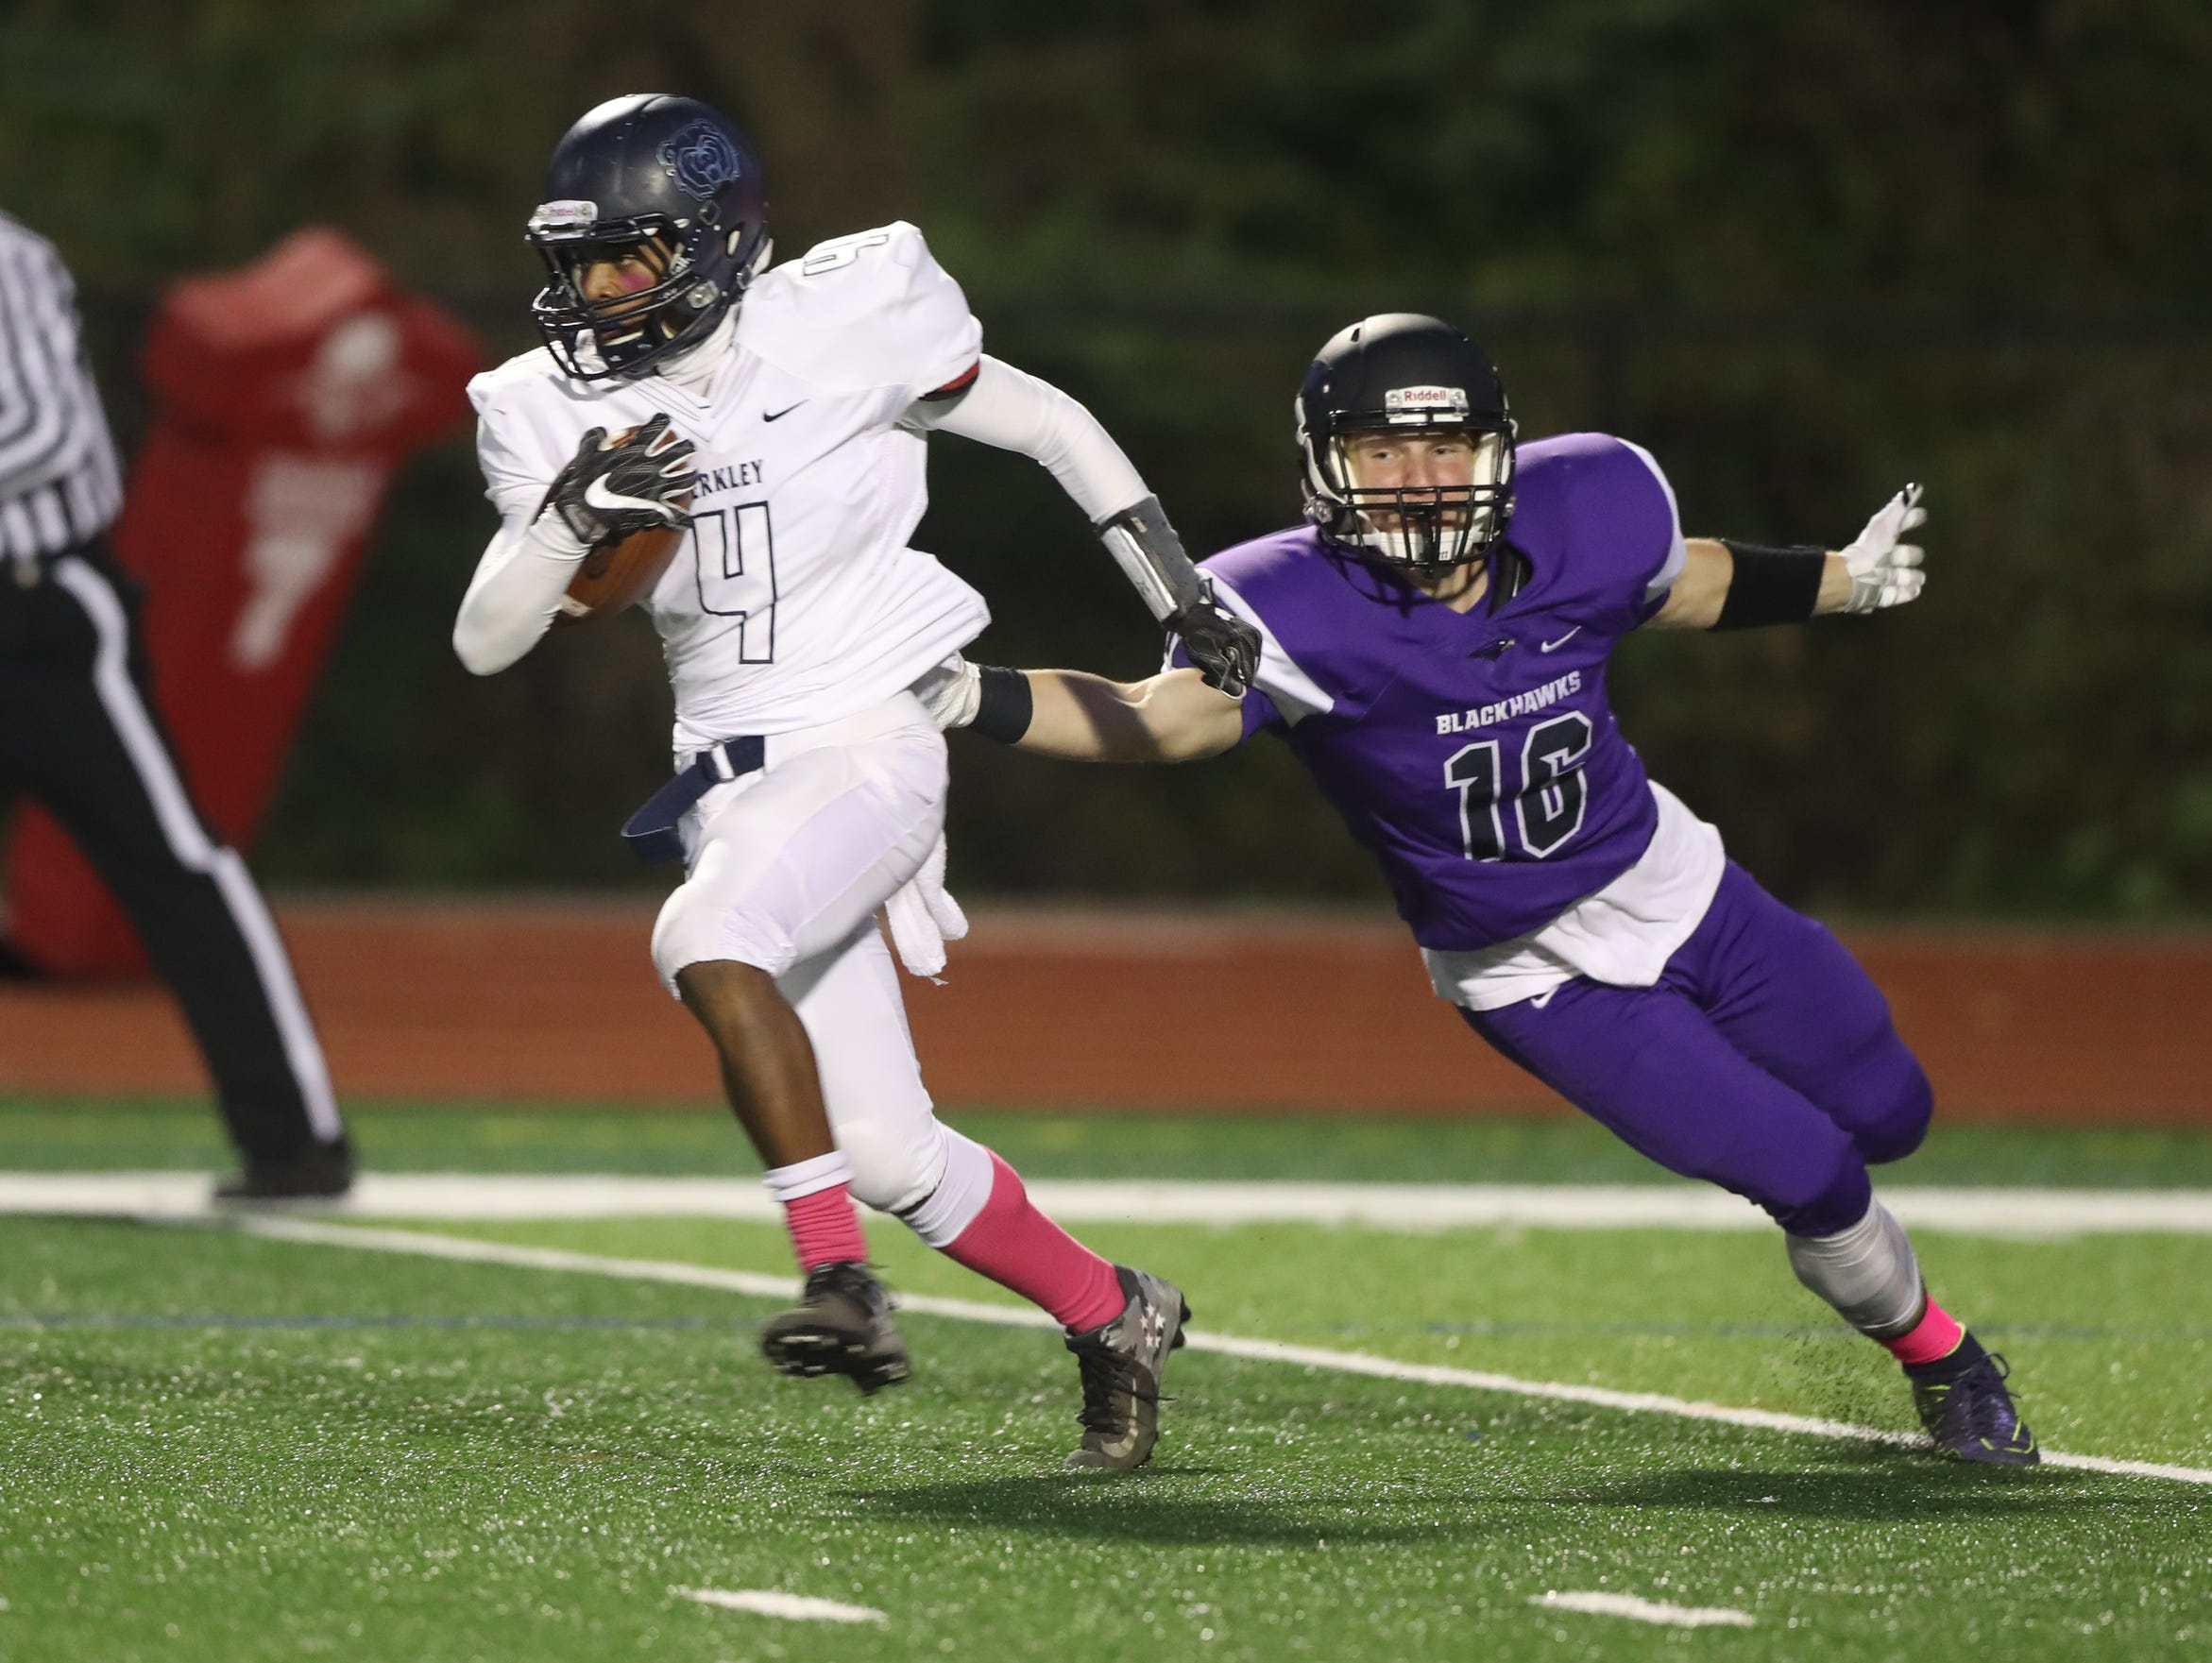 Bloomfield Hills' Marco Lozano tries to tackle a Berkley ballcarrier Friday at Bloomfield Hills.